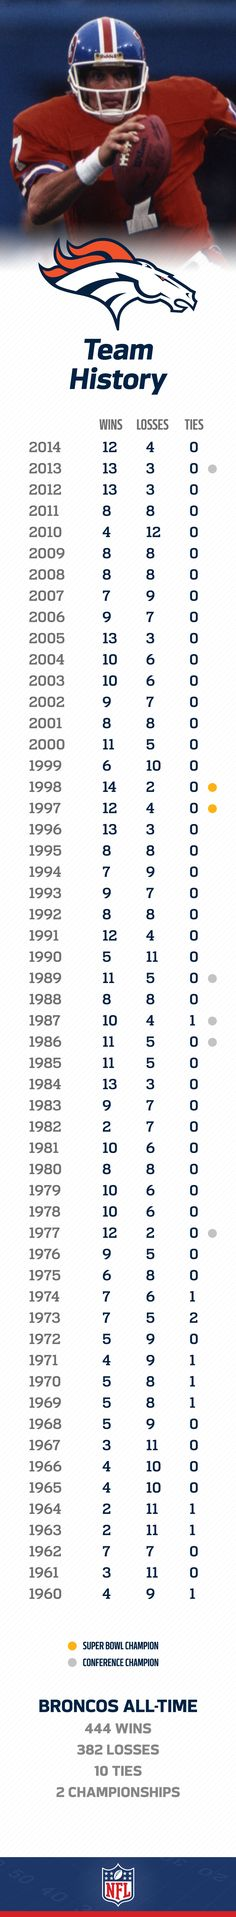 Despite a slow start in their NFL tenure, the Denver Broncos fortunes changed with John Elway, who led them to two Super Bowl wins. Since then the Broncos have only had 4 losing seasons in 32 years.